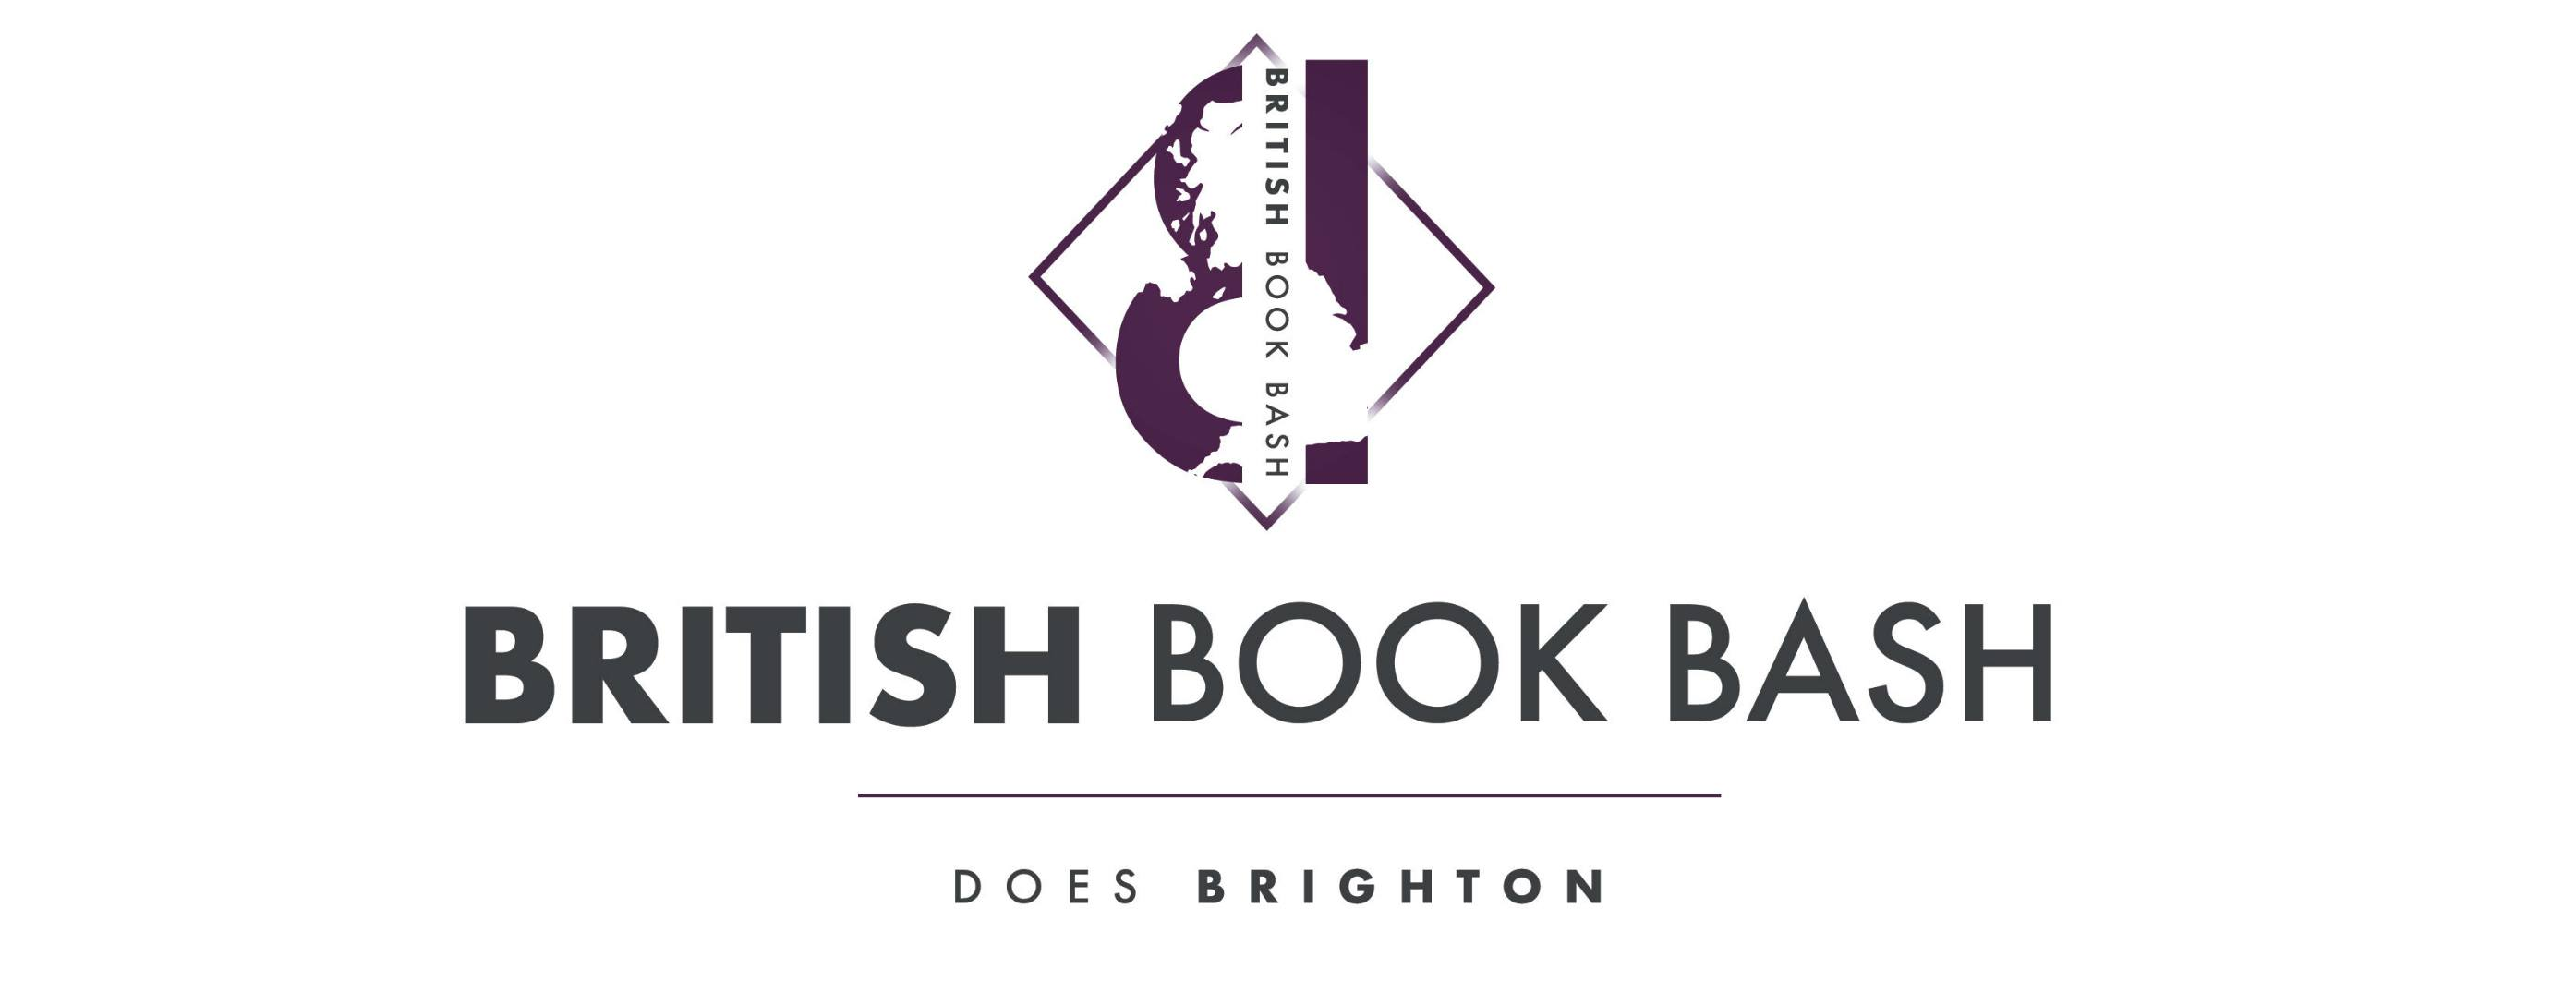 BritishBookBash does BRIGHTON 2018